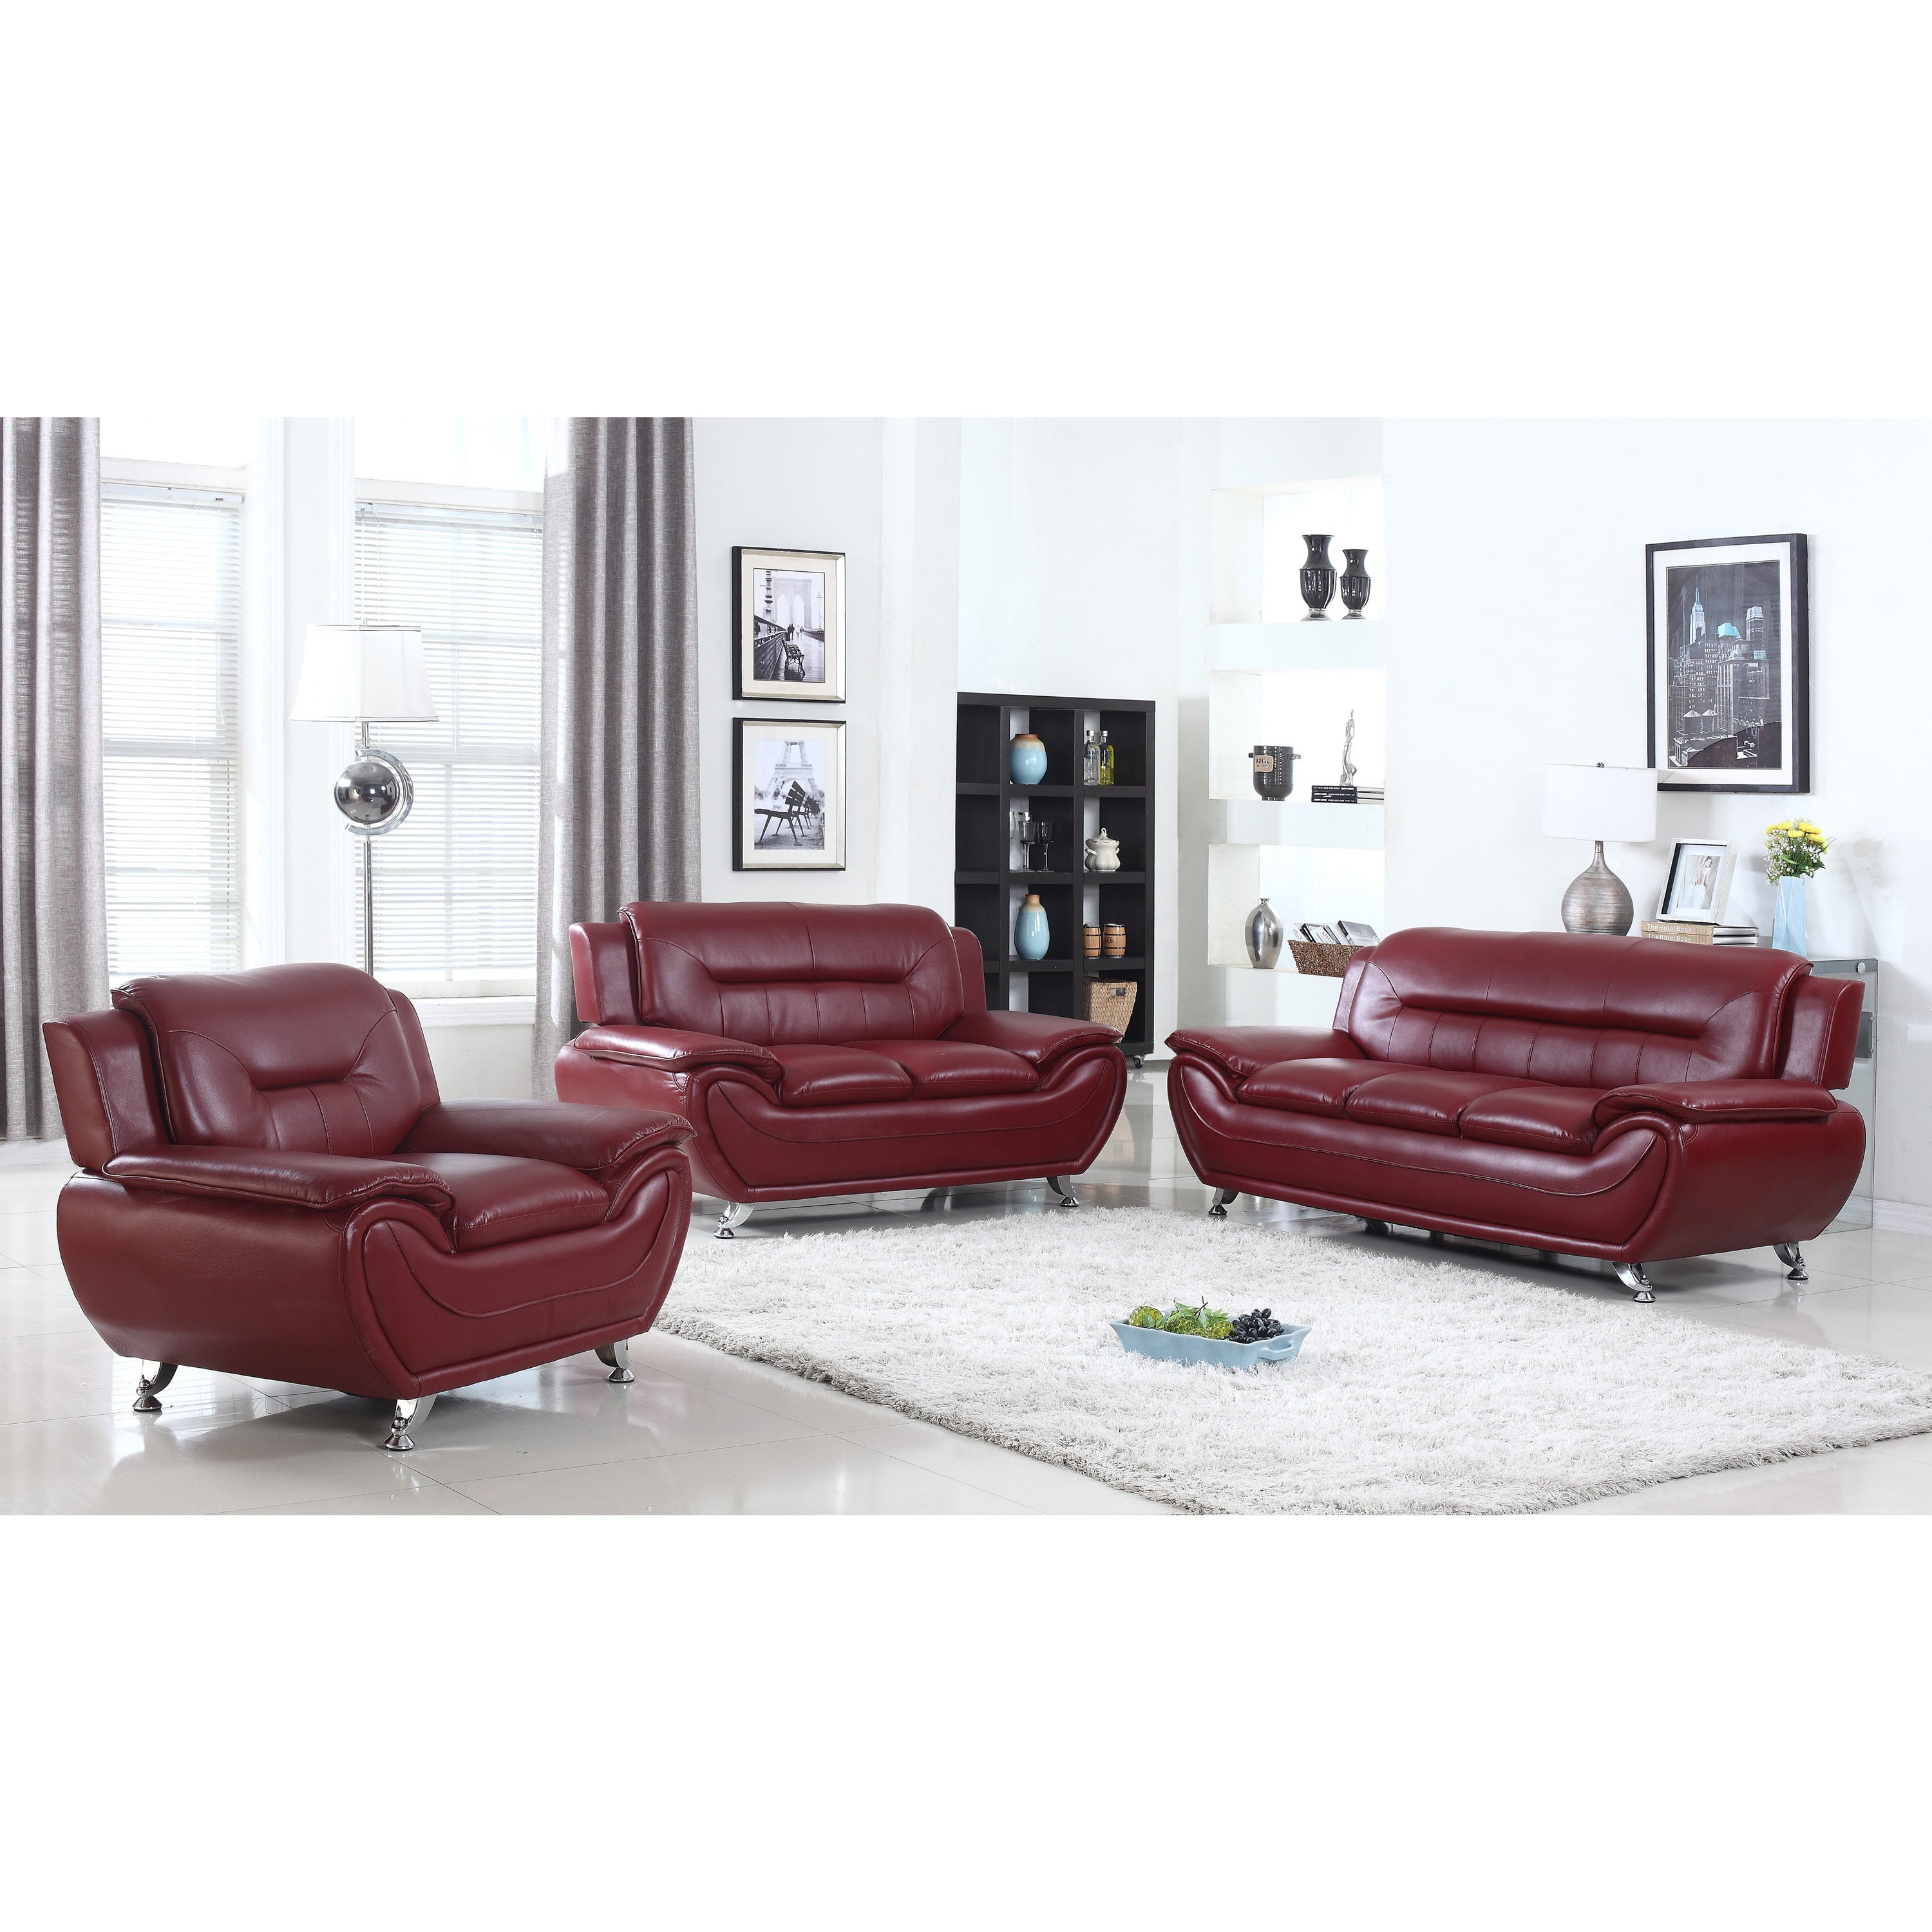 Shop Deliah relaxing contemporary modern style 3pc sofa set-3 colors ...